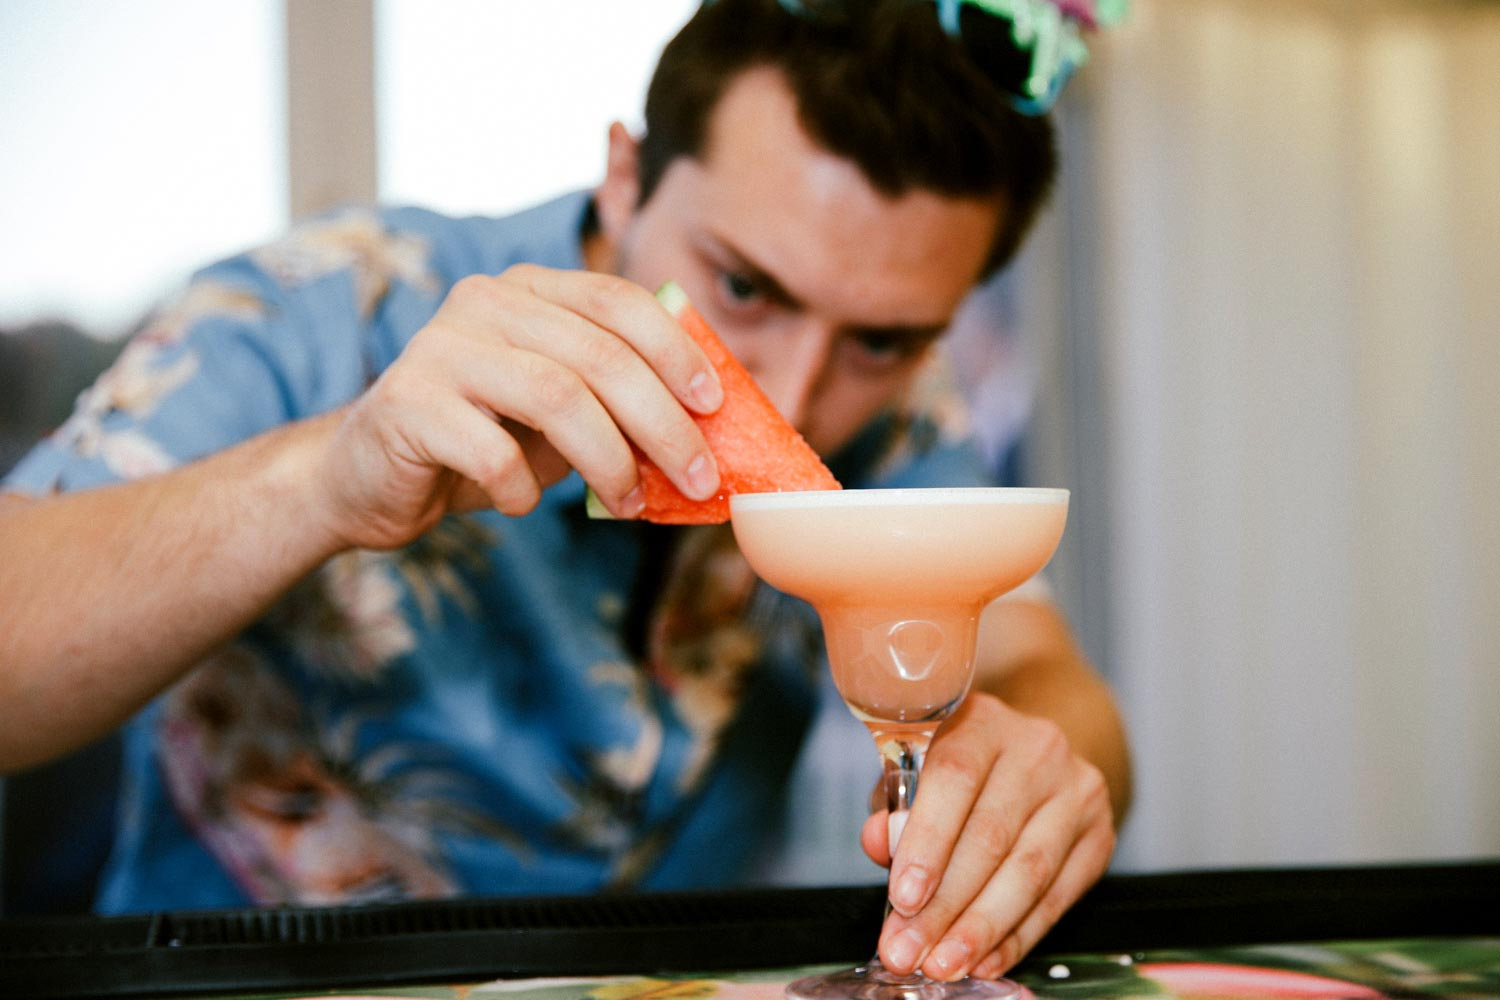 bartender garnishing cocktail with watermelon